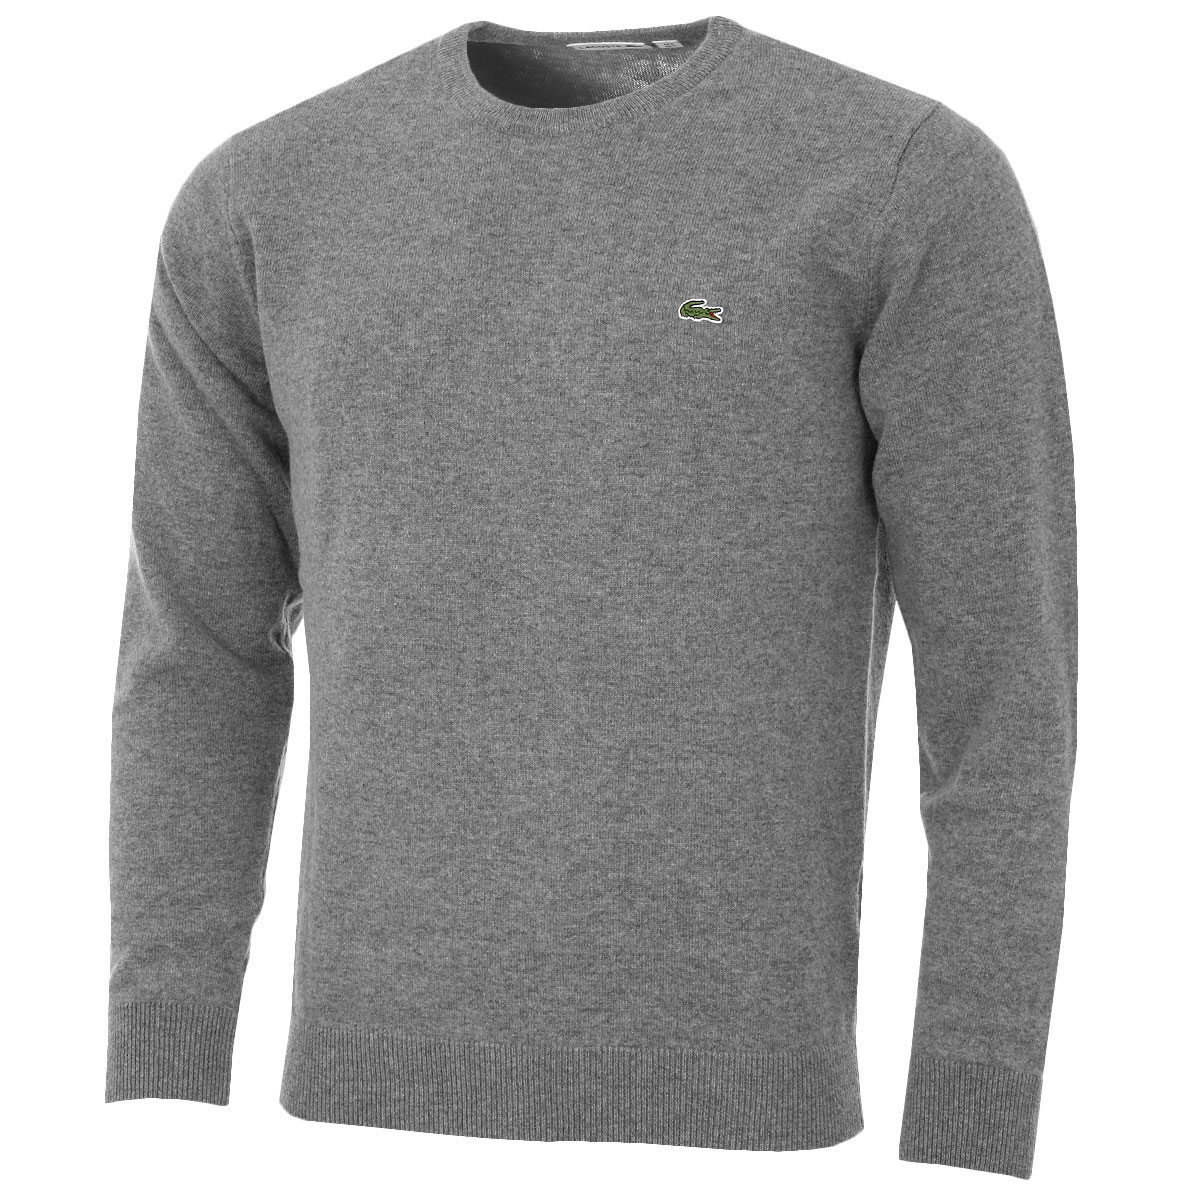 Lacoste Mens Crew Neck Wool Jersey Sweater AH2995 Pullover Classic Jumper;  Picture 2 of 3 ...